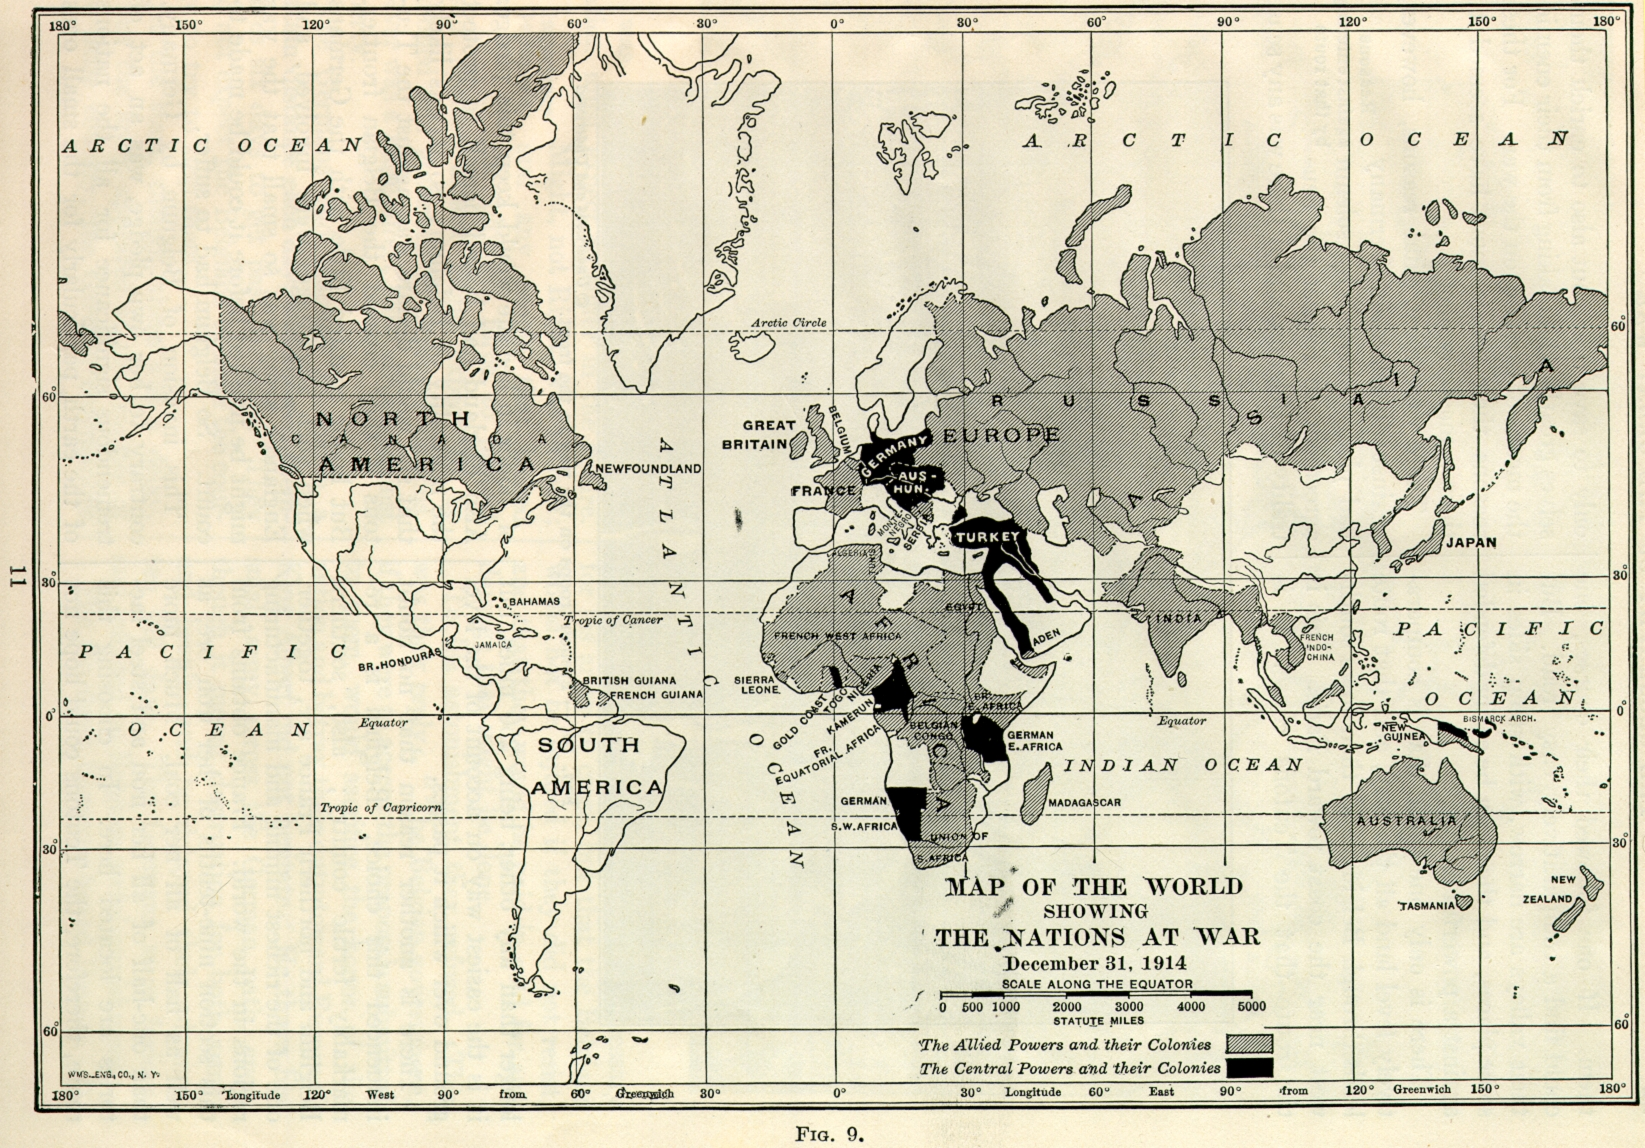 Further research world war i research guides at university of nations fighting world war i gumiabroncs Image collections